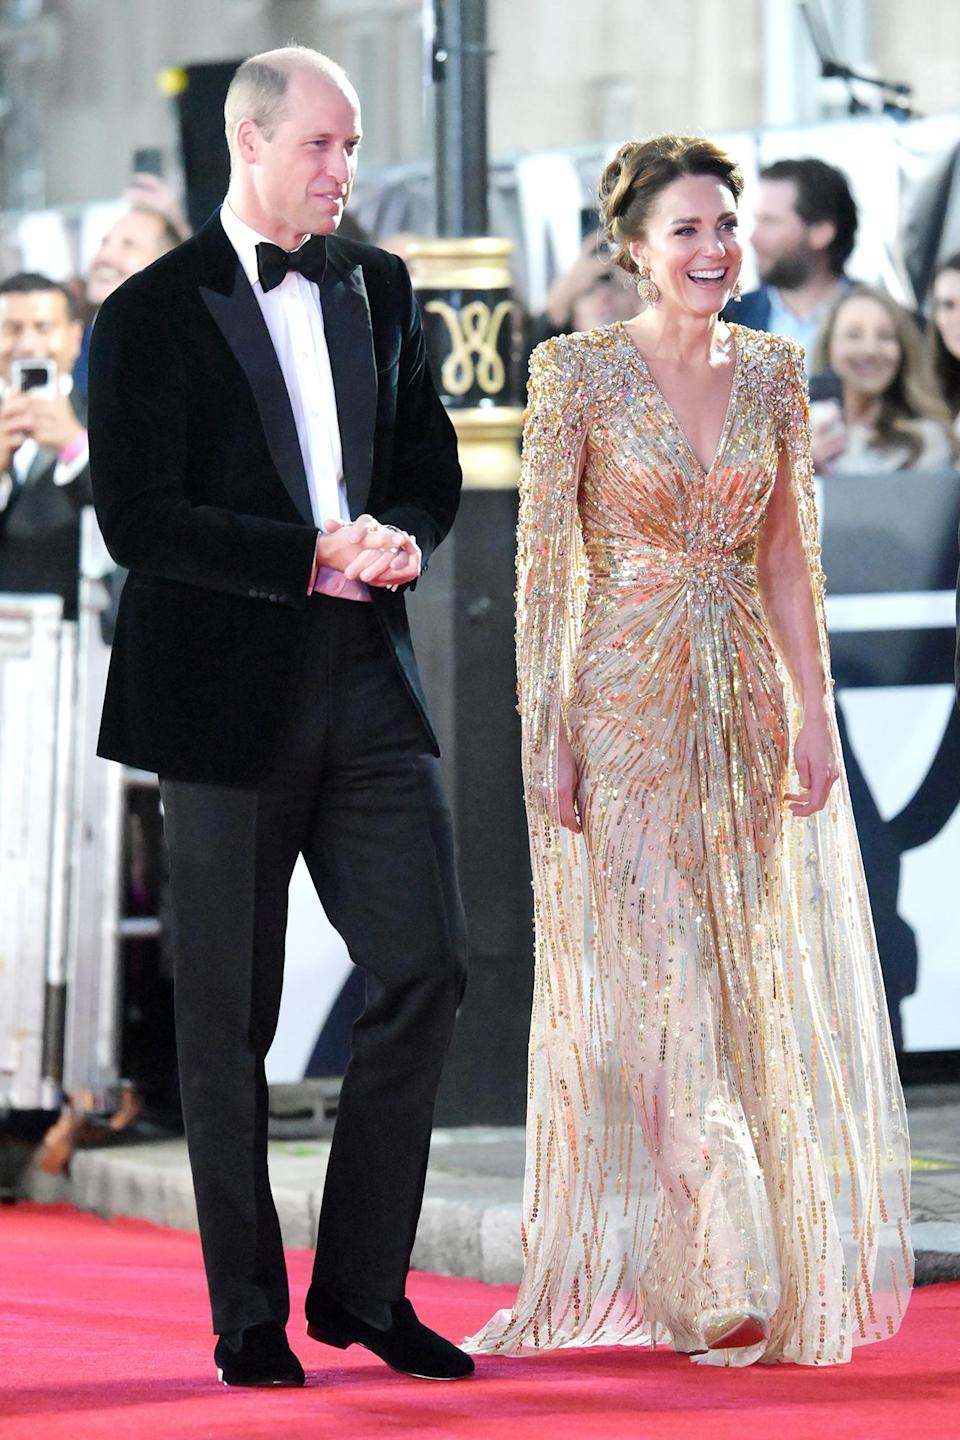 <p>For their big night out, Kate wore a gold, beaded Jenny Packham gown with a dramatic cape while William opted for a velvet jacket with satin lapels and black cashmere slippers by Arthur Sleep.</p>